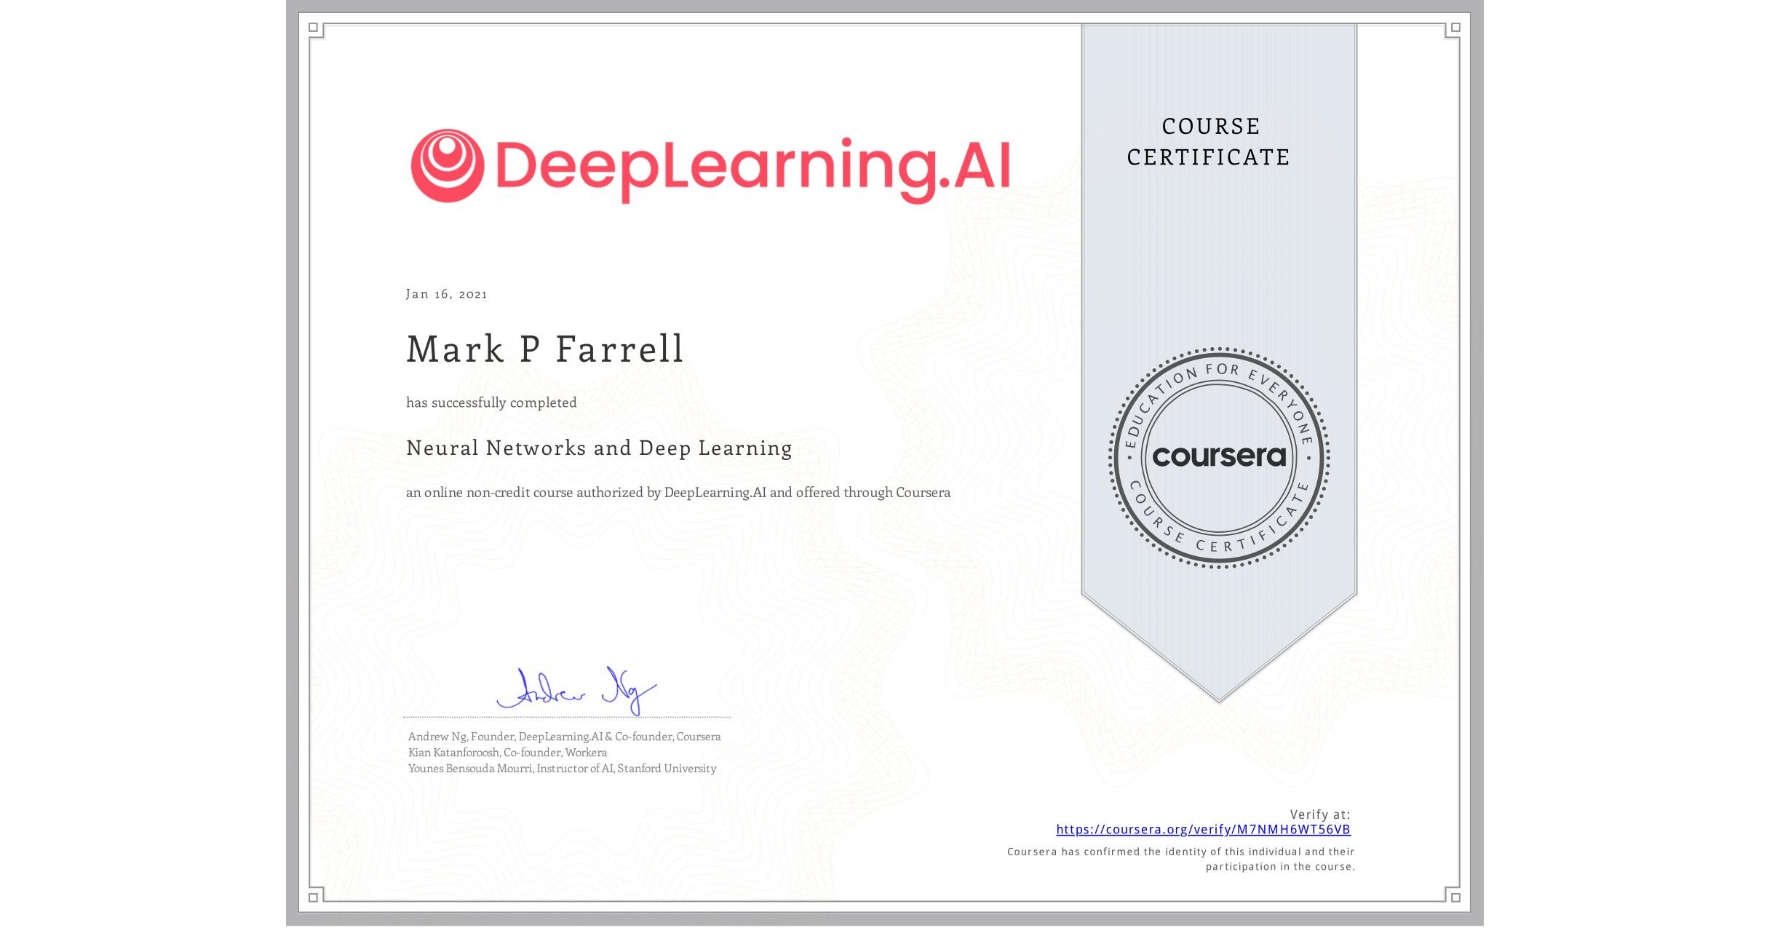 View certificate for Mark P Farrell, Neural Networks and Deep Learning, an online non-credit course authorized by DeepLearning.AI and offered through Coursera